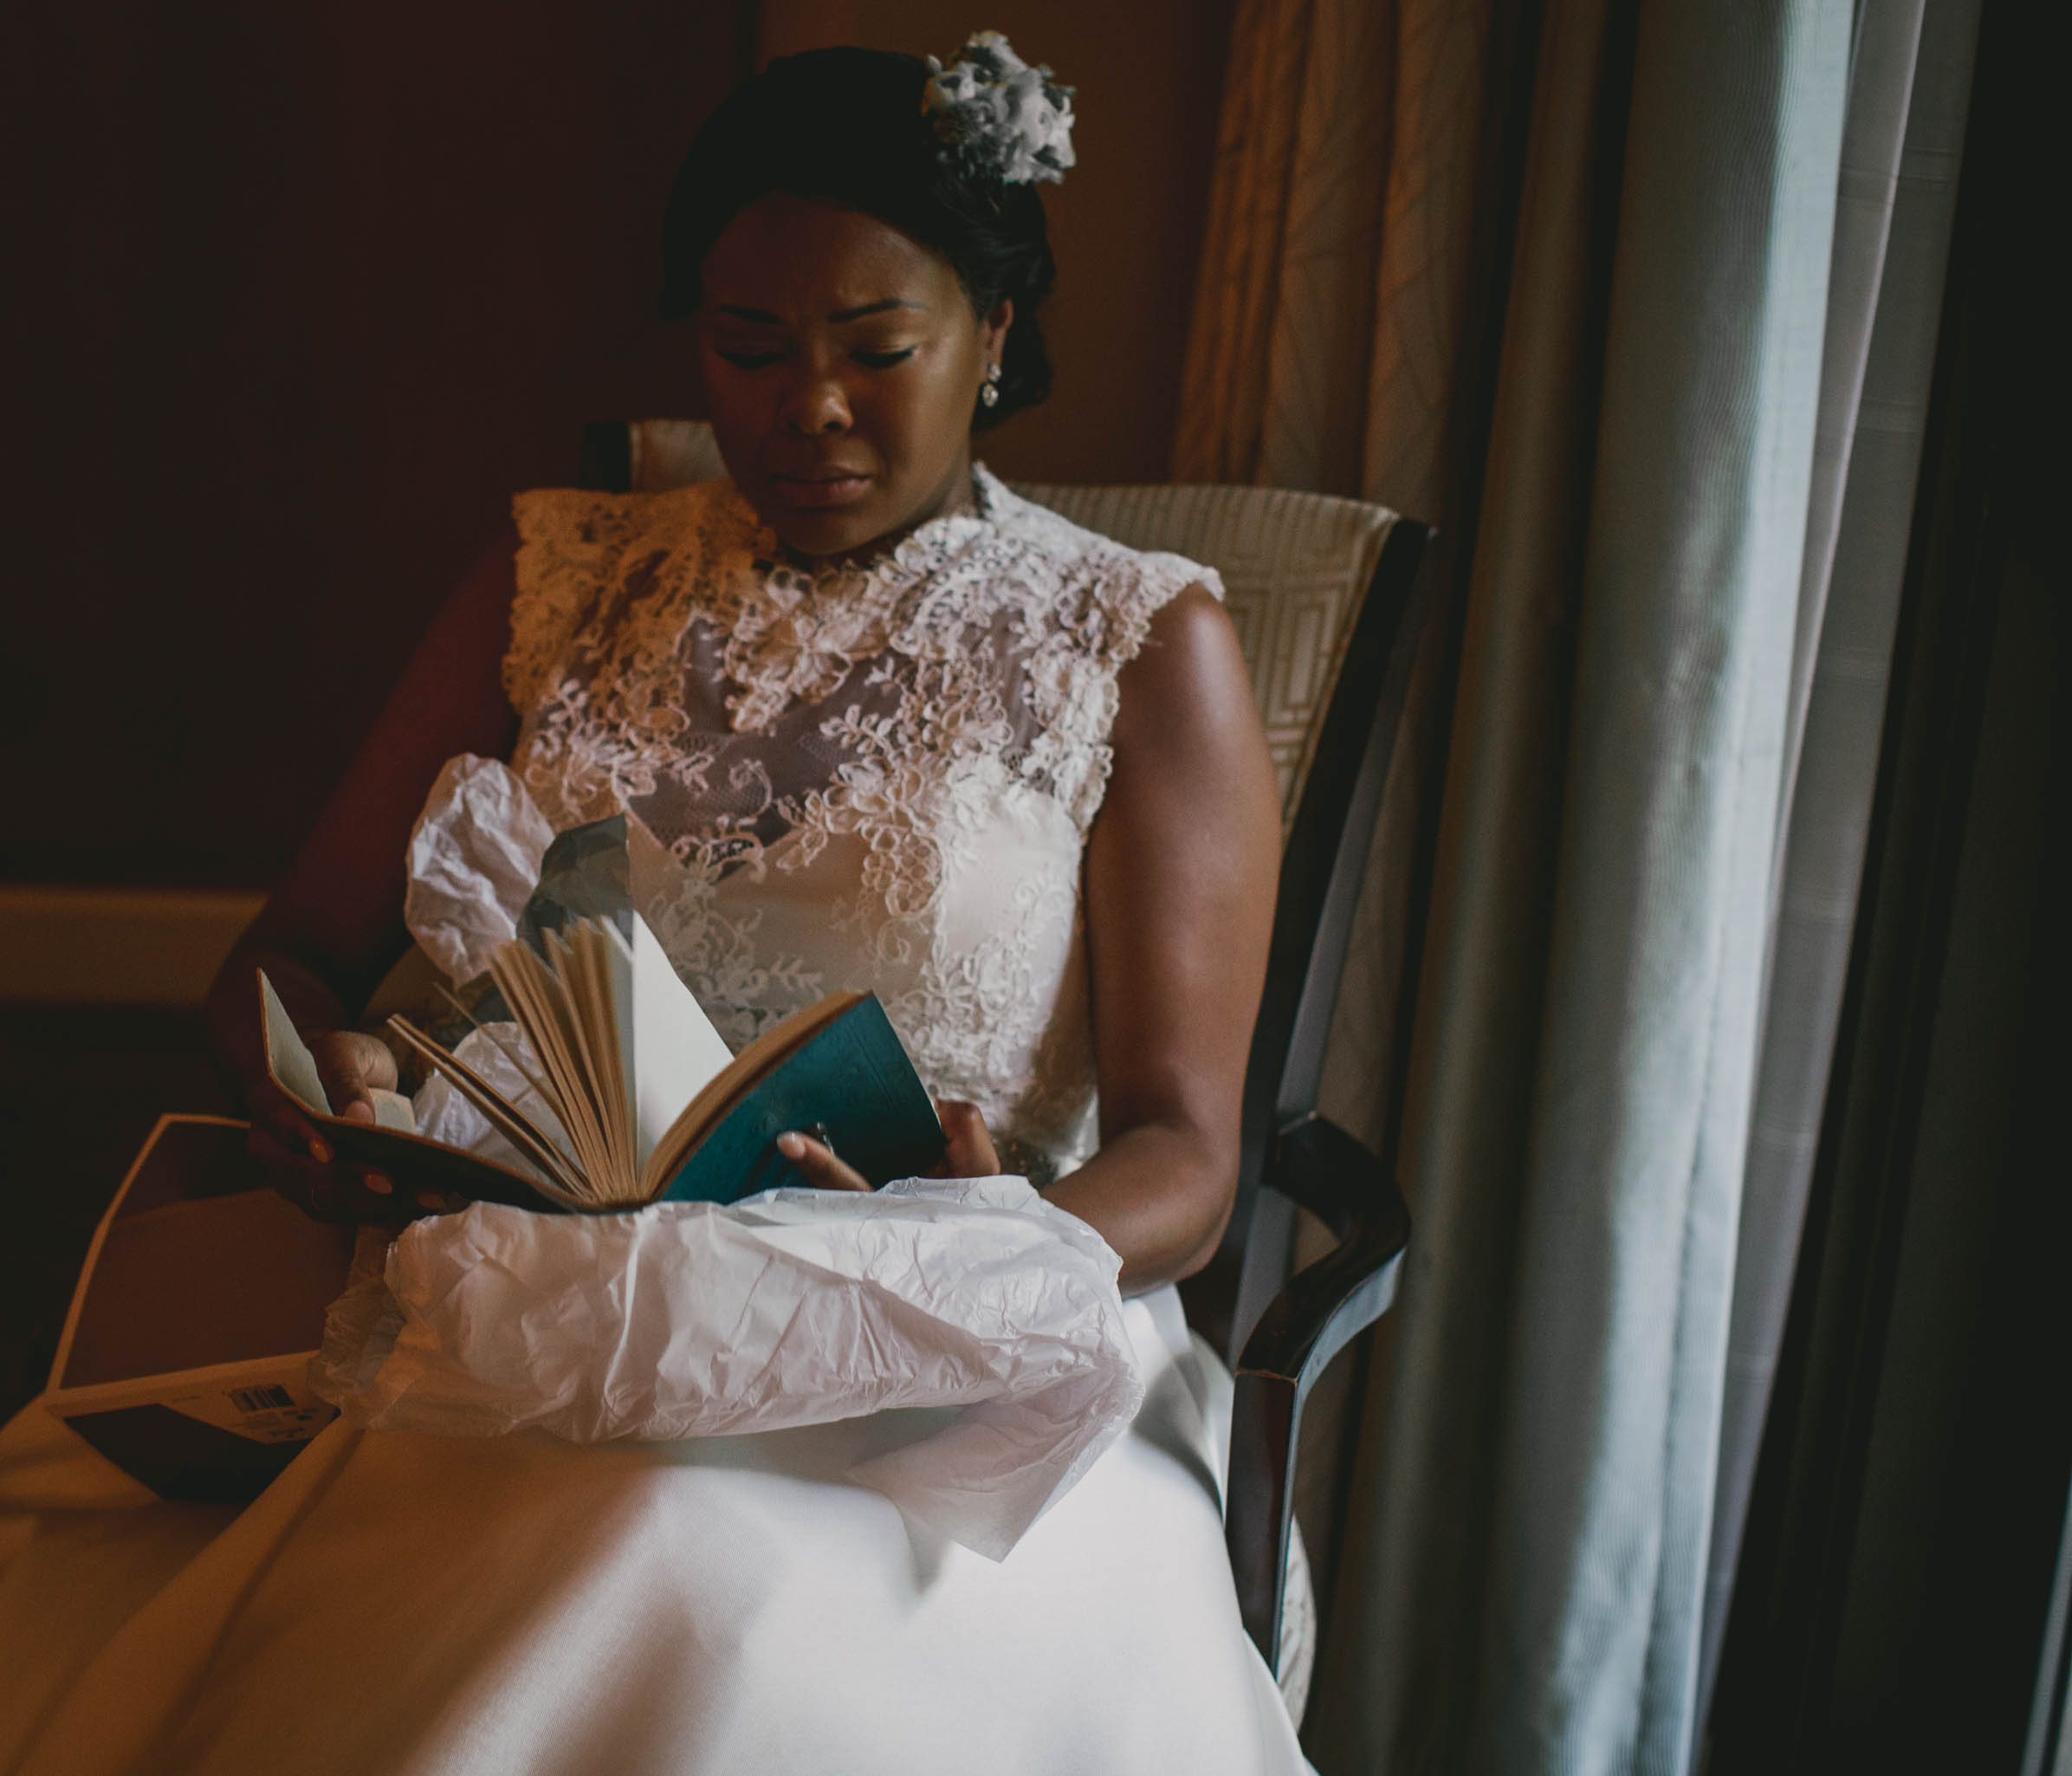 Bride opening her gift from her groom before the ceremony